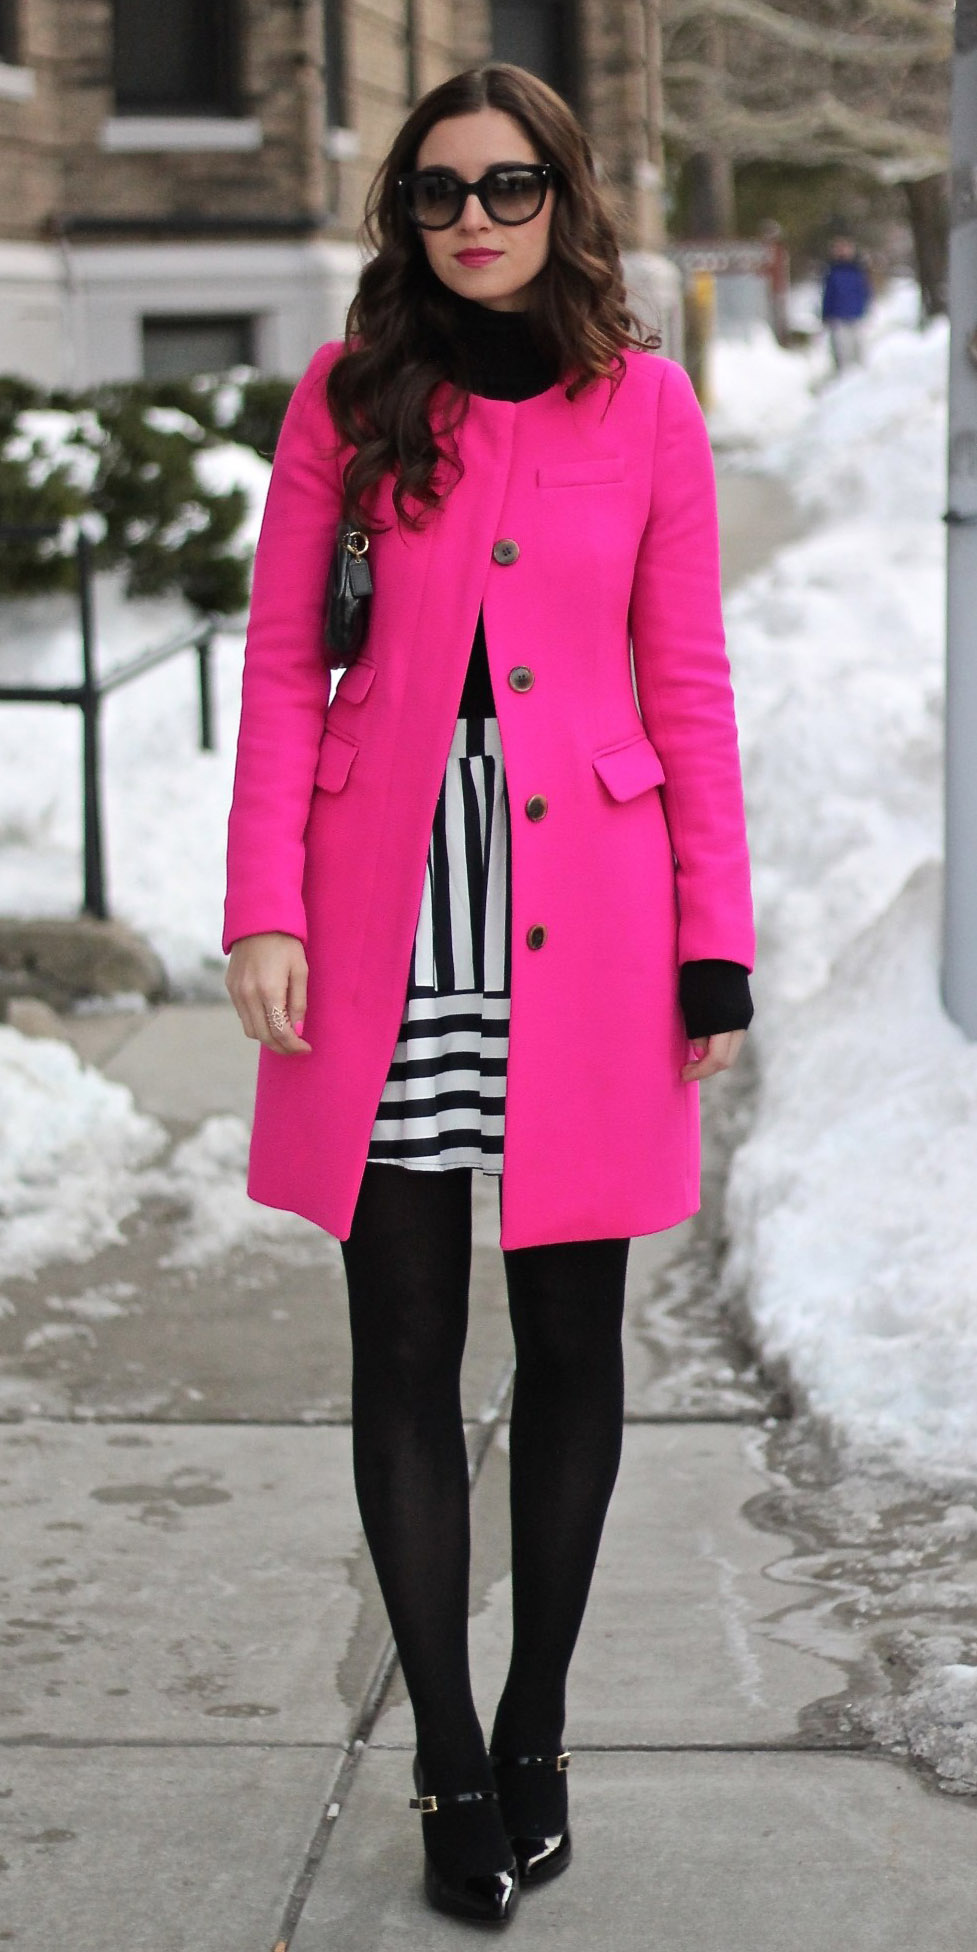 white-mini-skirt-stripe-black-sweater-turtleneck-black-tights-black-shoe-pumps-sun-pink-magenta-jacket-coat-fall-winter-brun-dinner.jpg